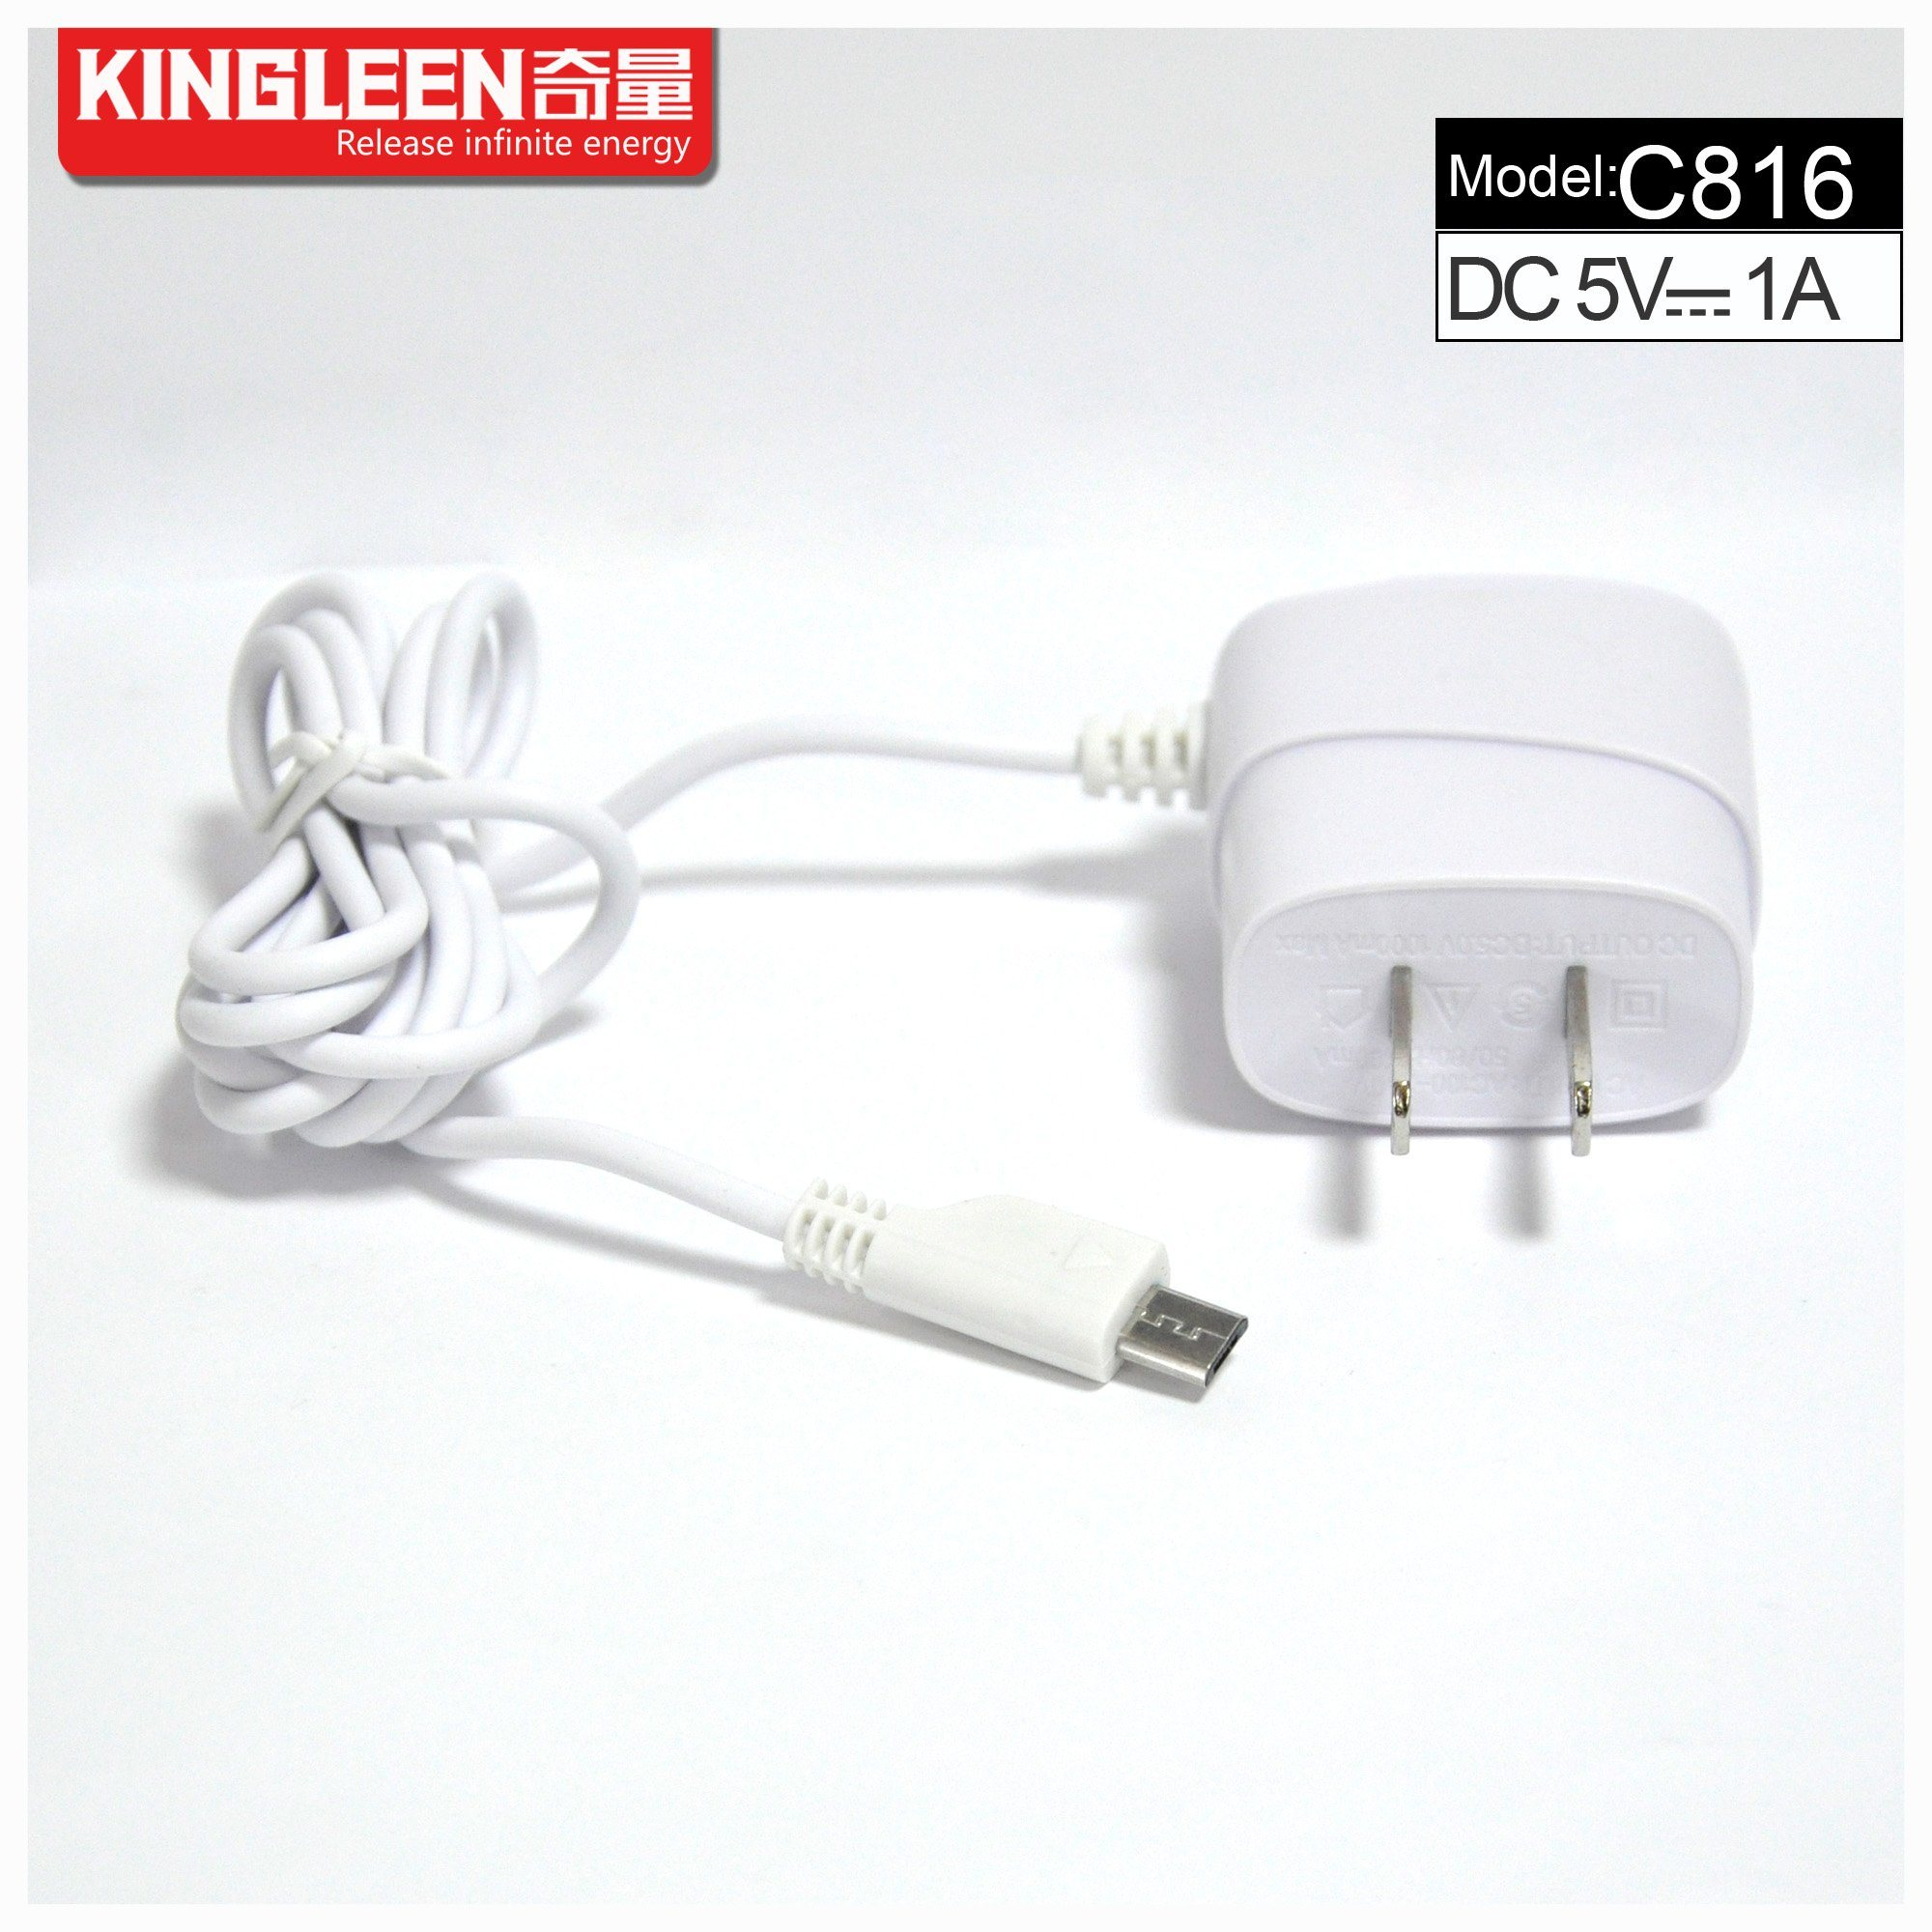 Kingleen C816 Mobile Travel Charger for Mirco, 1.2mwire, 5V1a, Intelligent Direct Charger Export to Europe